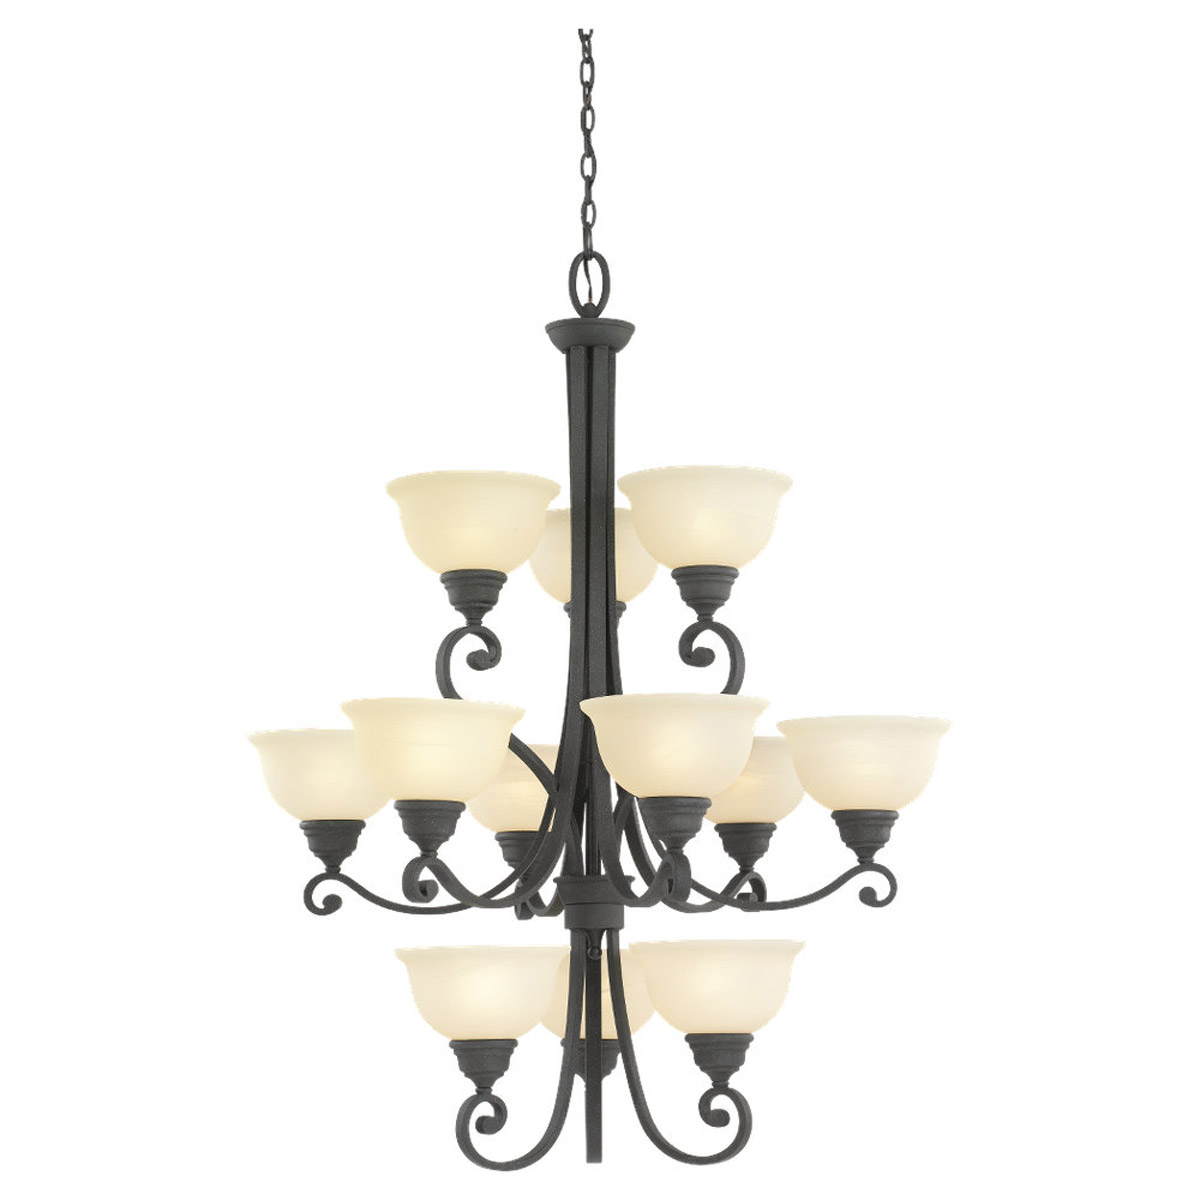 Sea Gull Lighting Serenity 12 Light Chandelier in Weathered Iron 31193-07